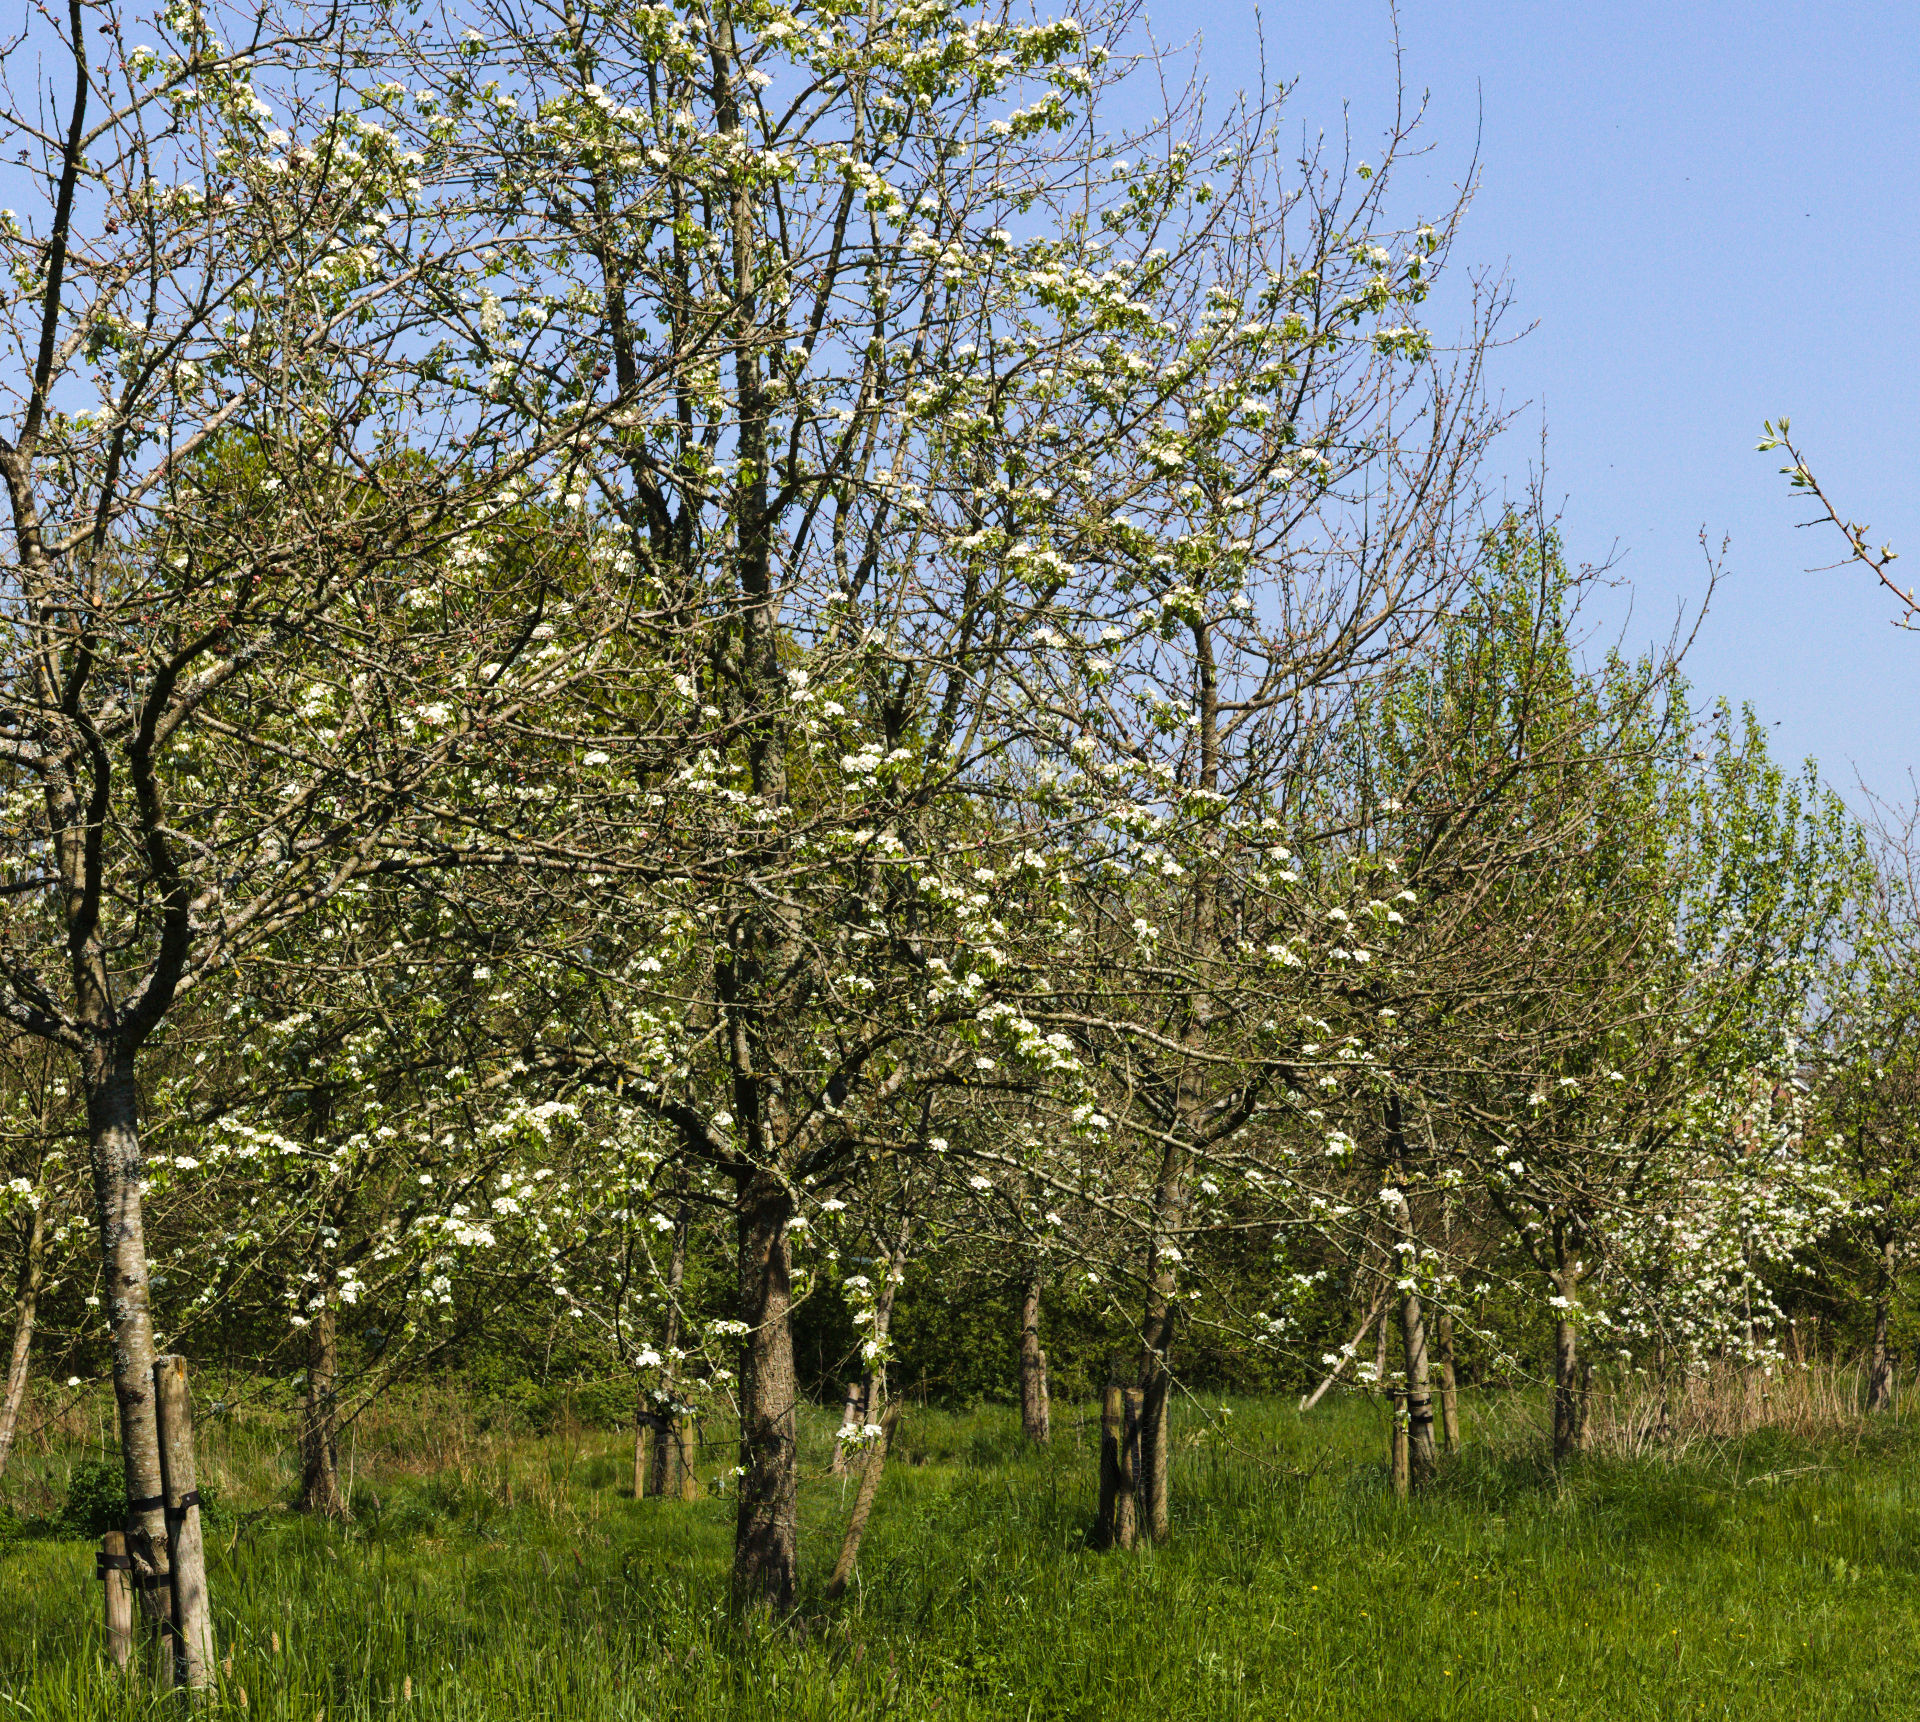 Avenue of trees flowering in Llanblethian orchard